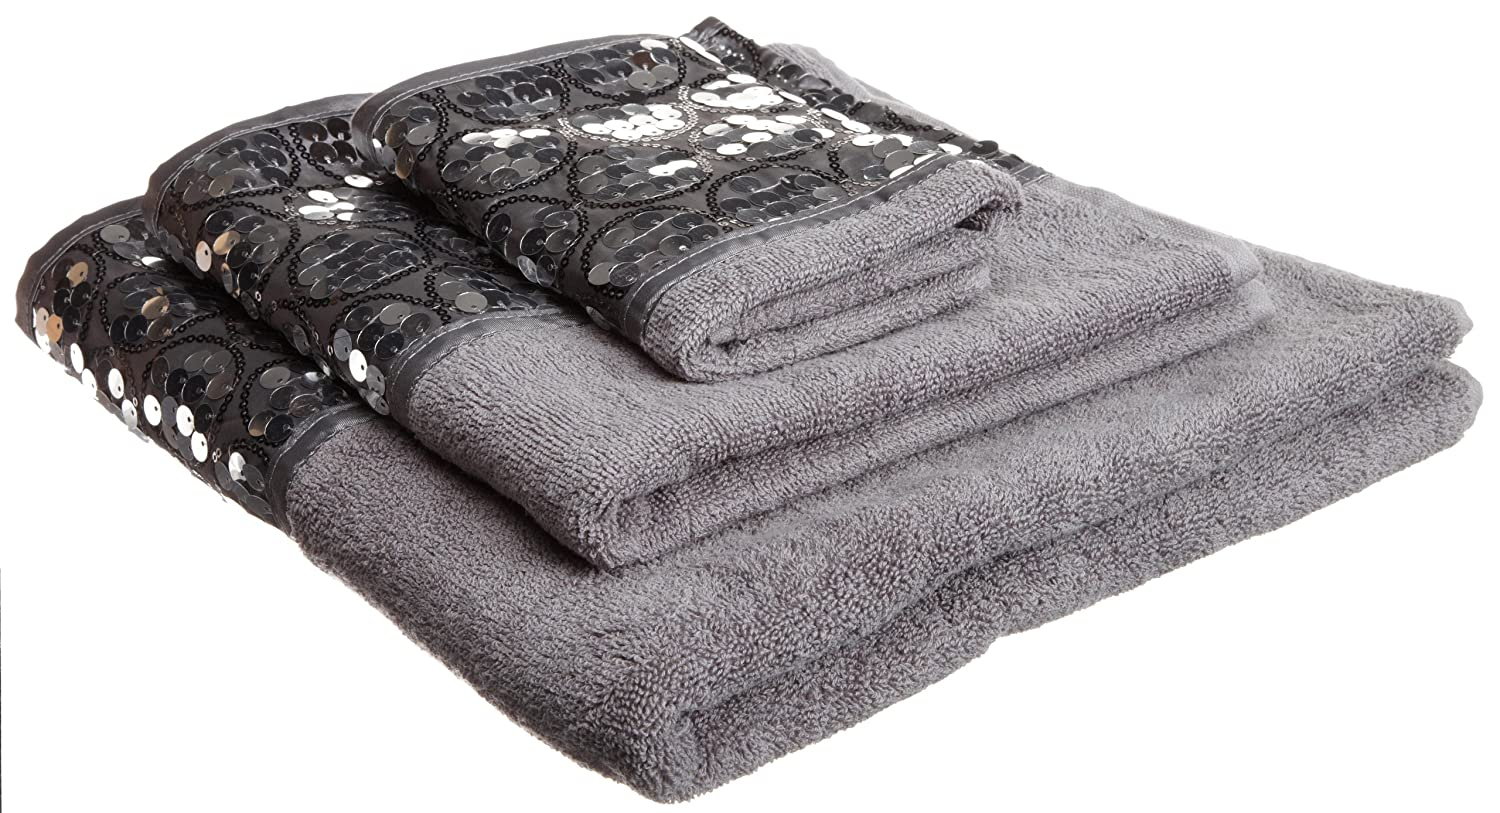 Enjoy free shipping and easy returns every day at Kohl's. Find great deals on Grey Bath Towels at Kohl's today!